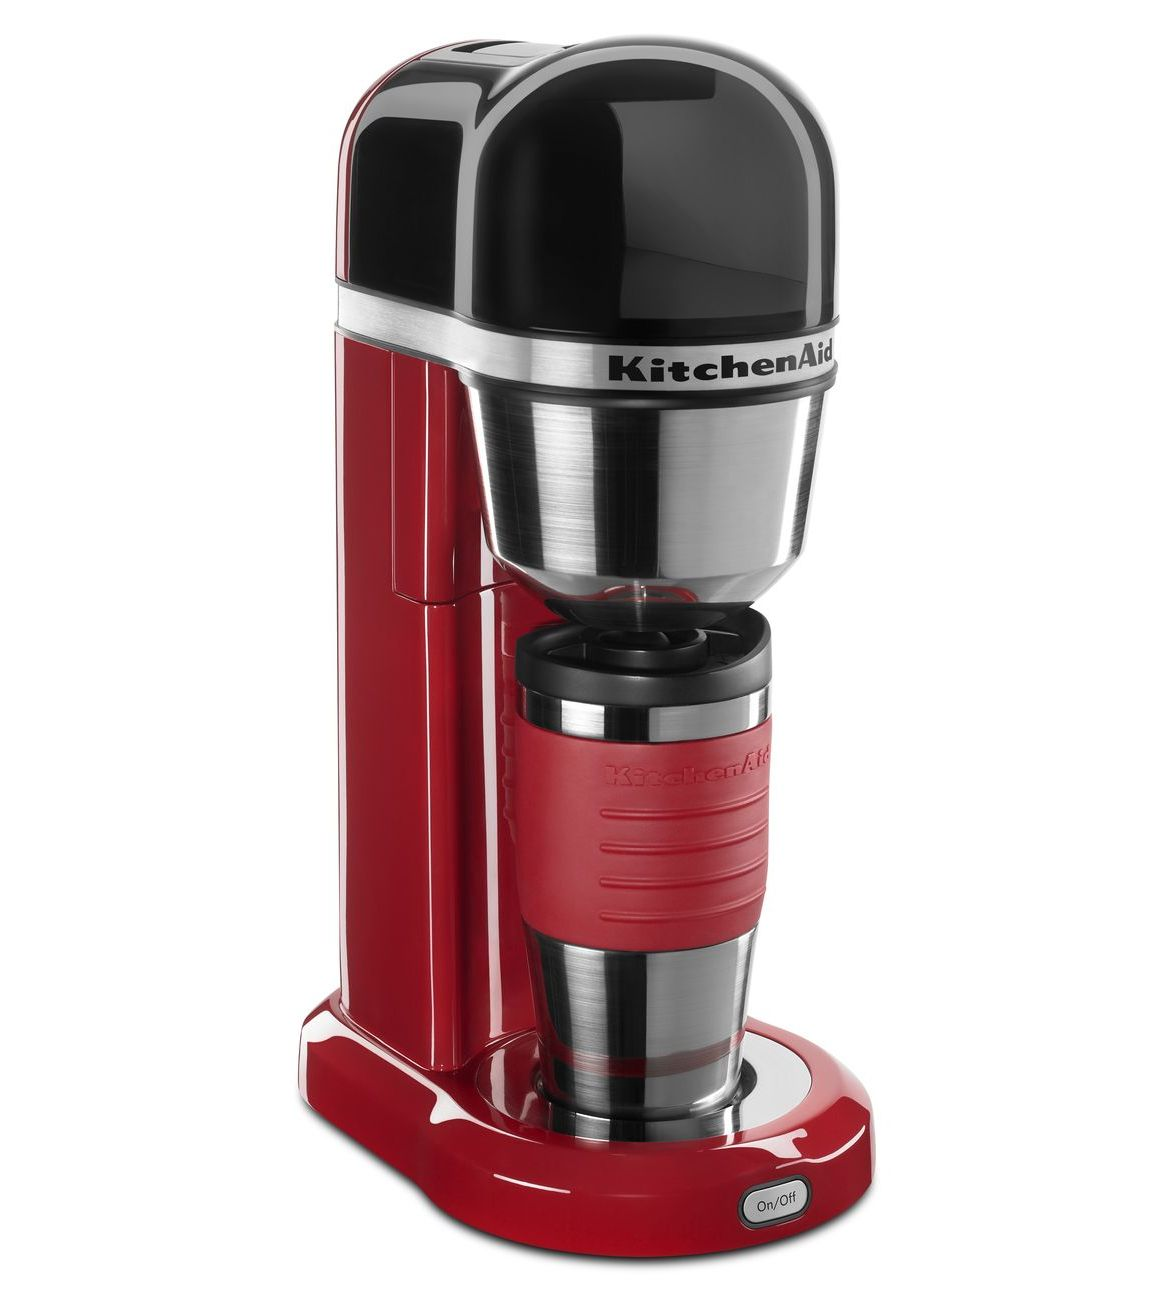 Thumbnail image for KitchenAid Personal Coffeemaker